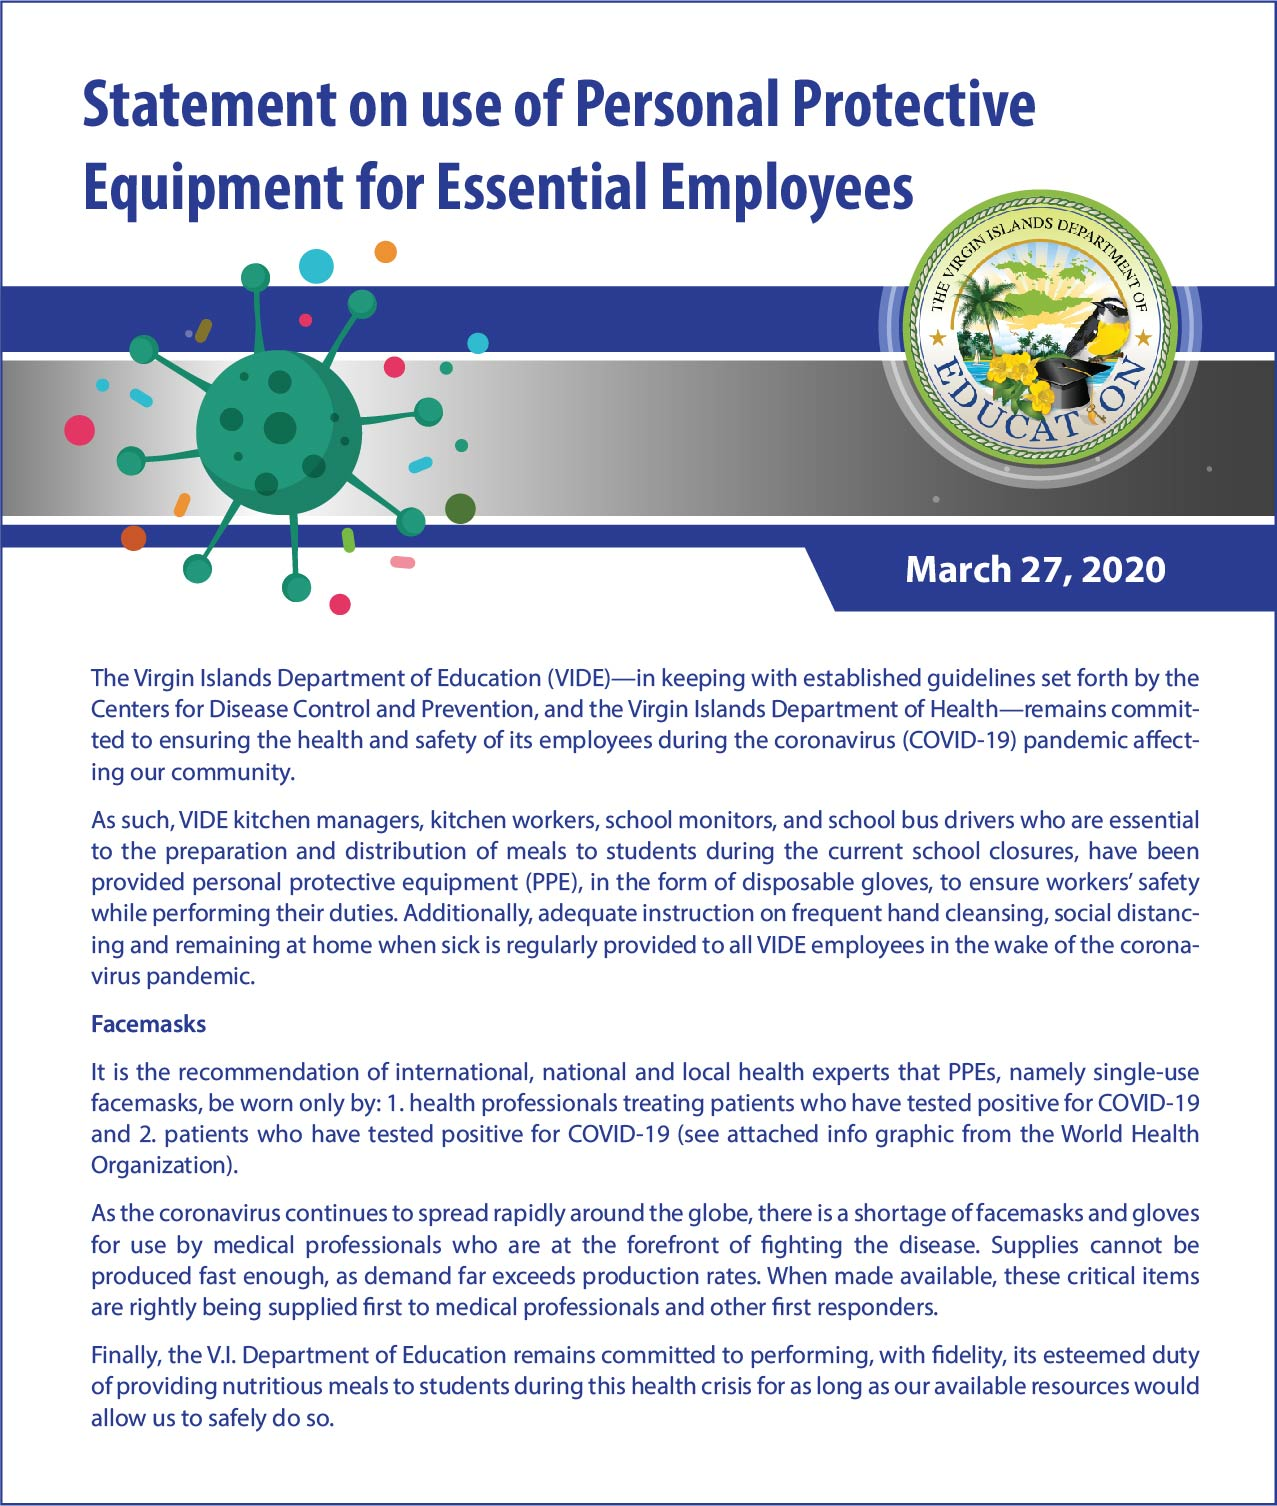 Statement on use of Personal Protective Equipment for Essential Employees.jpg